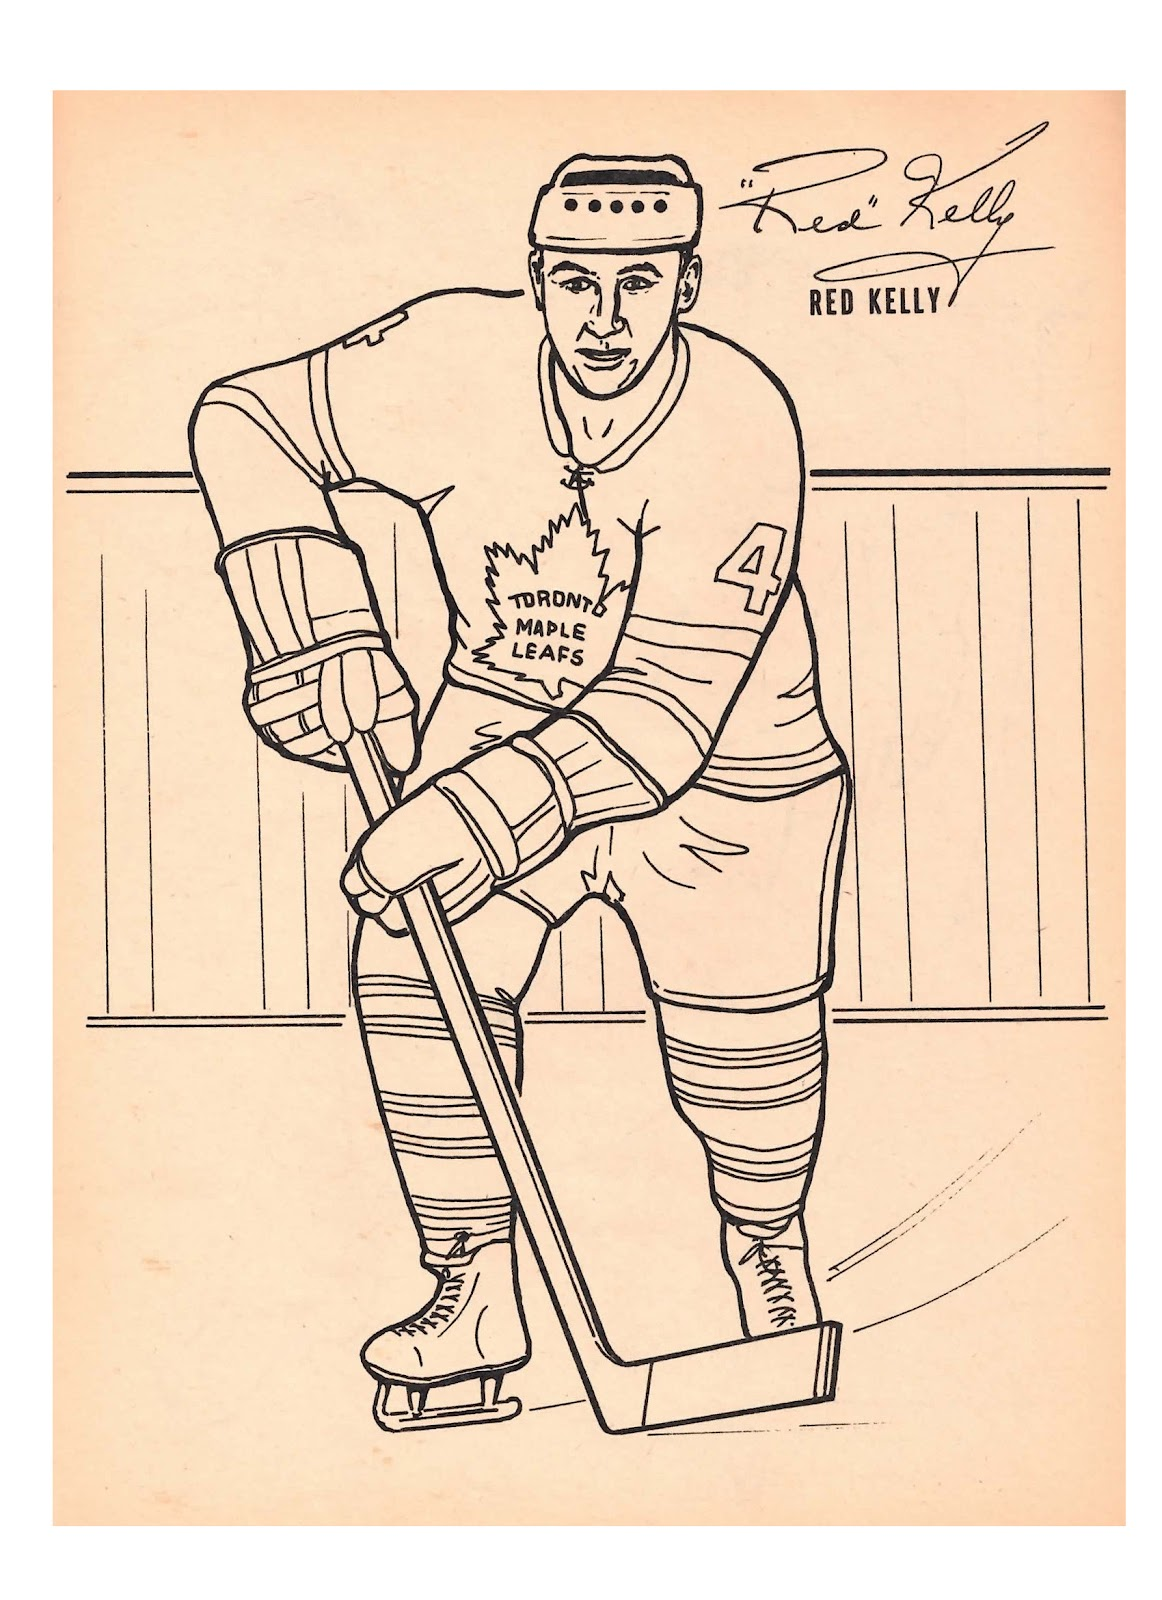 Toronto Maple Leafs Coloring Pages - Learny Kids